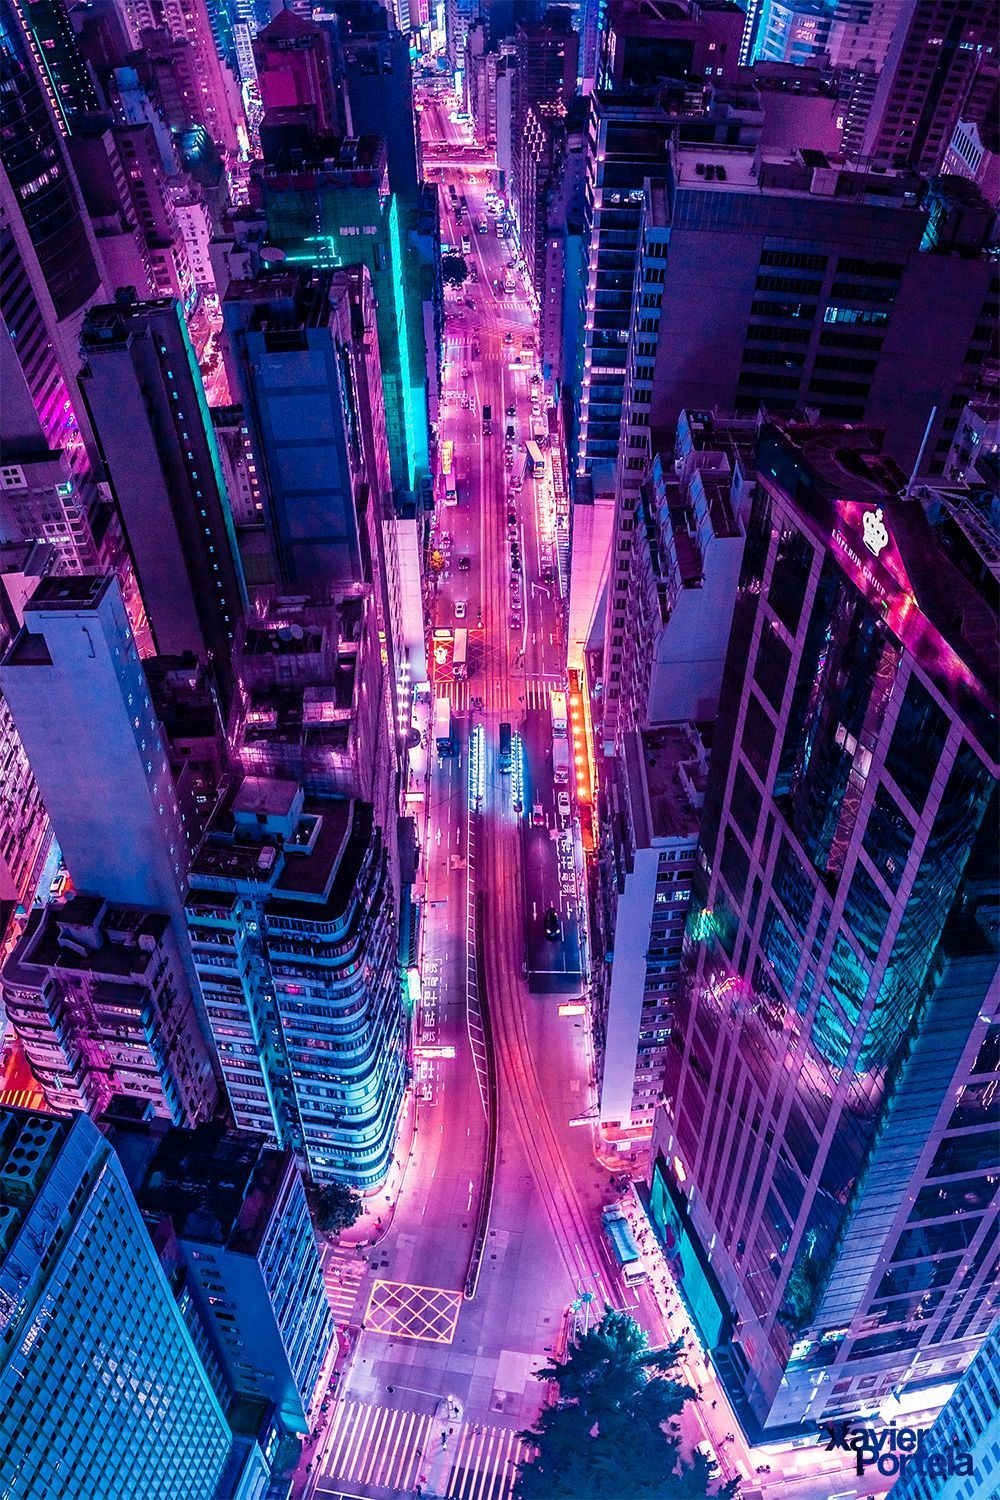 Neon City Aesthetic Wallpapers On Wallpaperdog Neon aesthetic violet aesthetic night aesthetic aesthetic japan aesthetic bedroom. neon city aesthetic wallpapers on